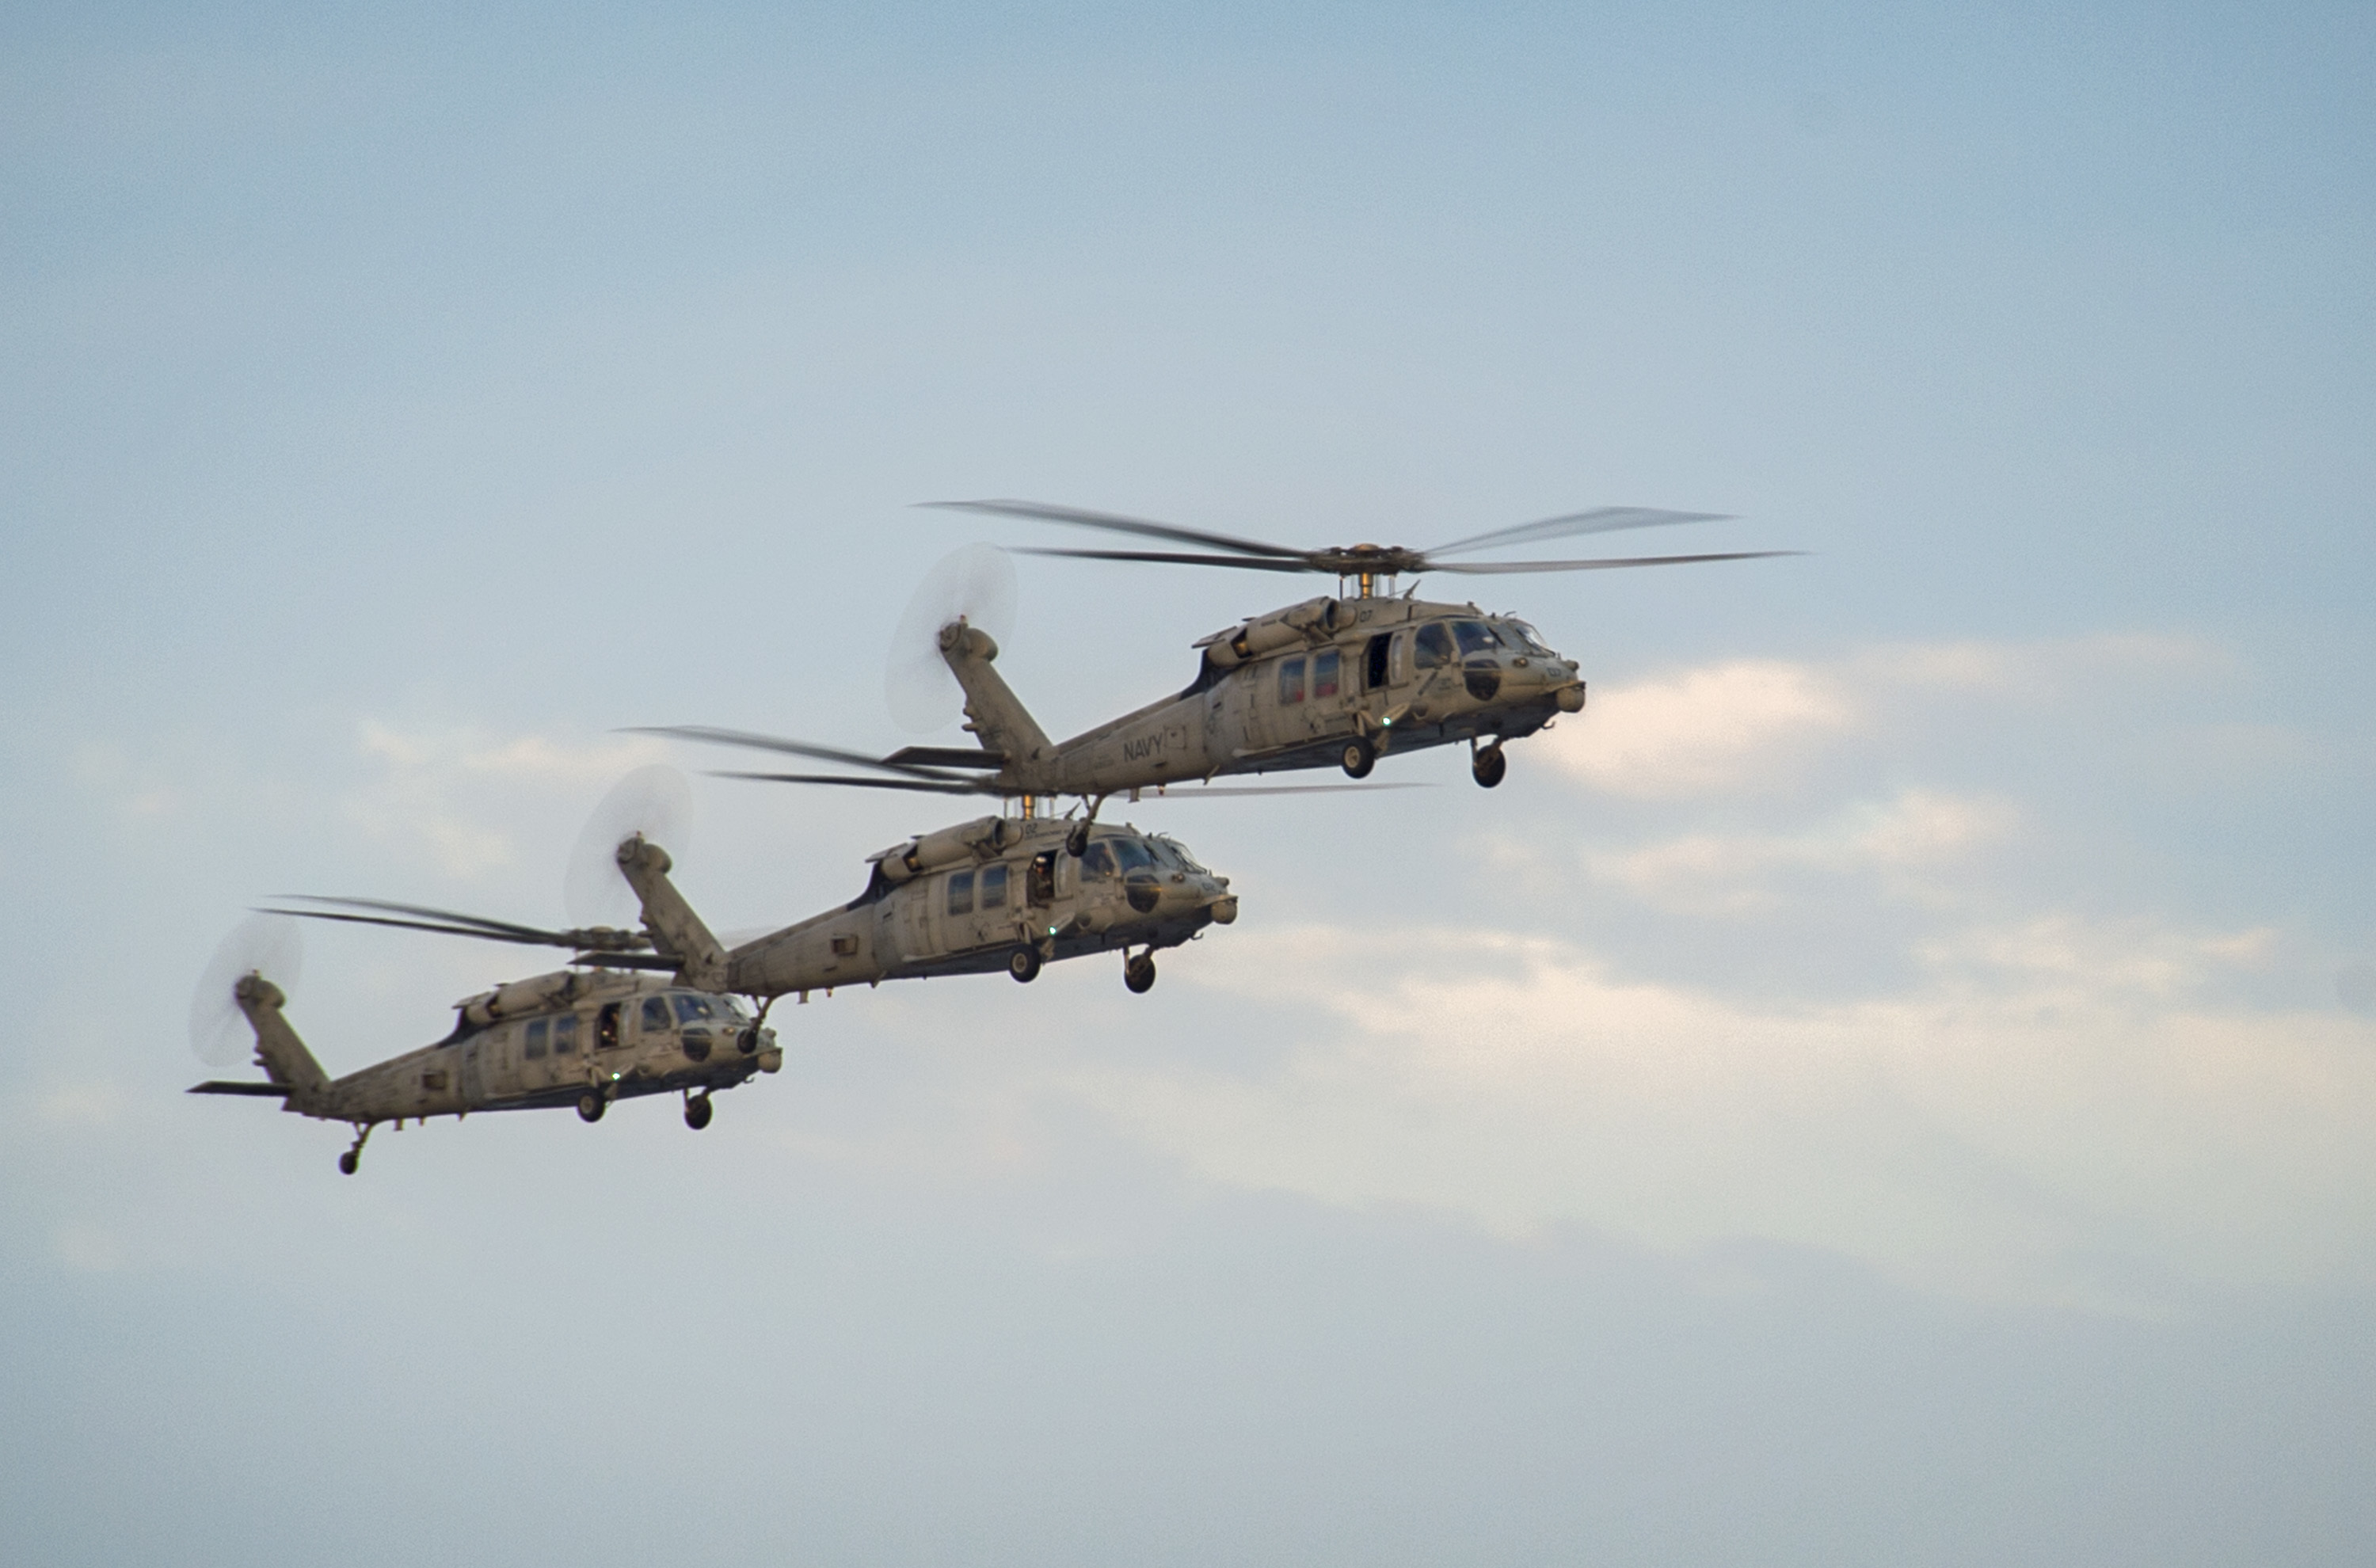 Three Sea Hawk Helicopters, Aircraft, Aviation, Hawk, Helicopters, HQ Photo